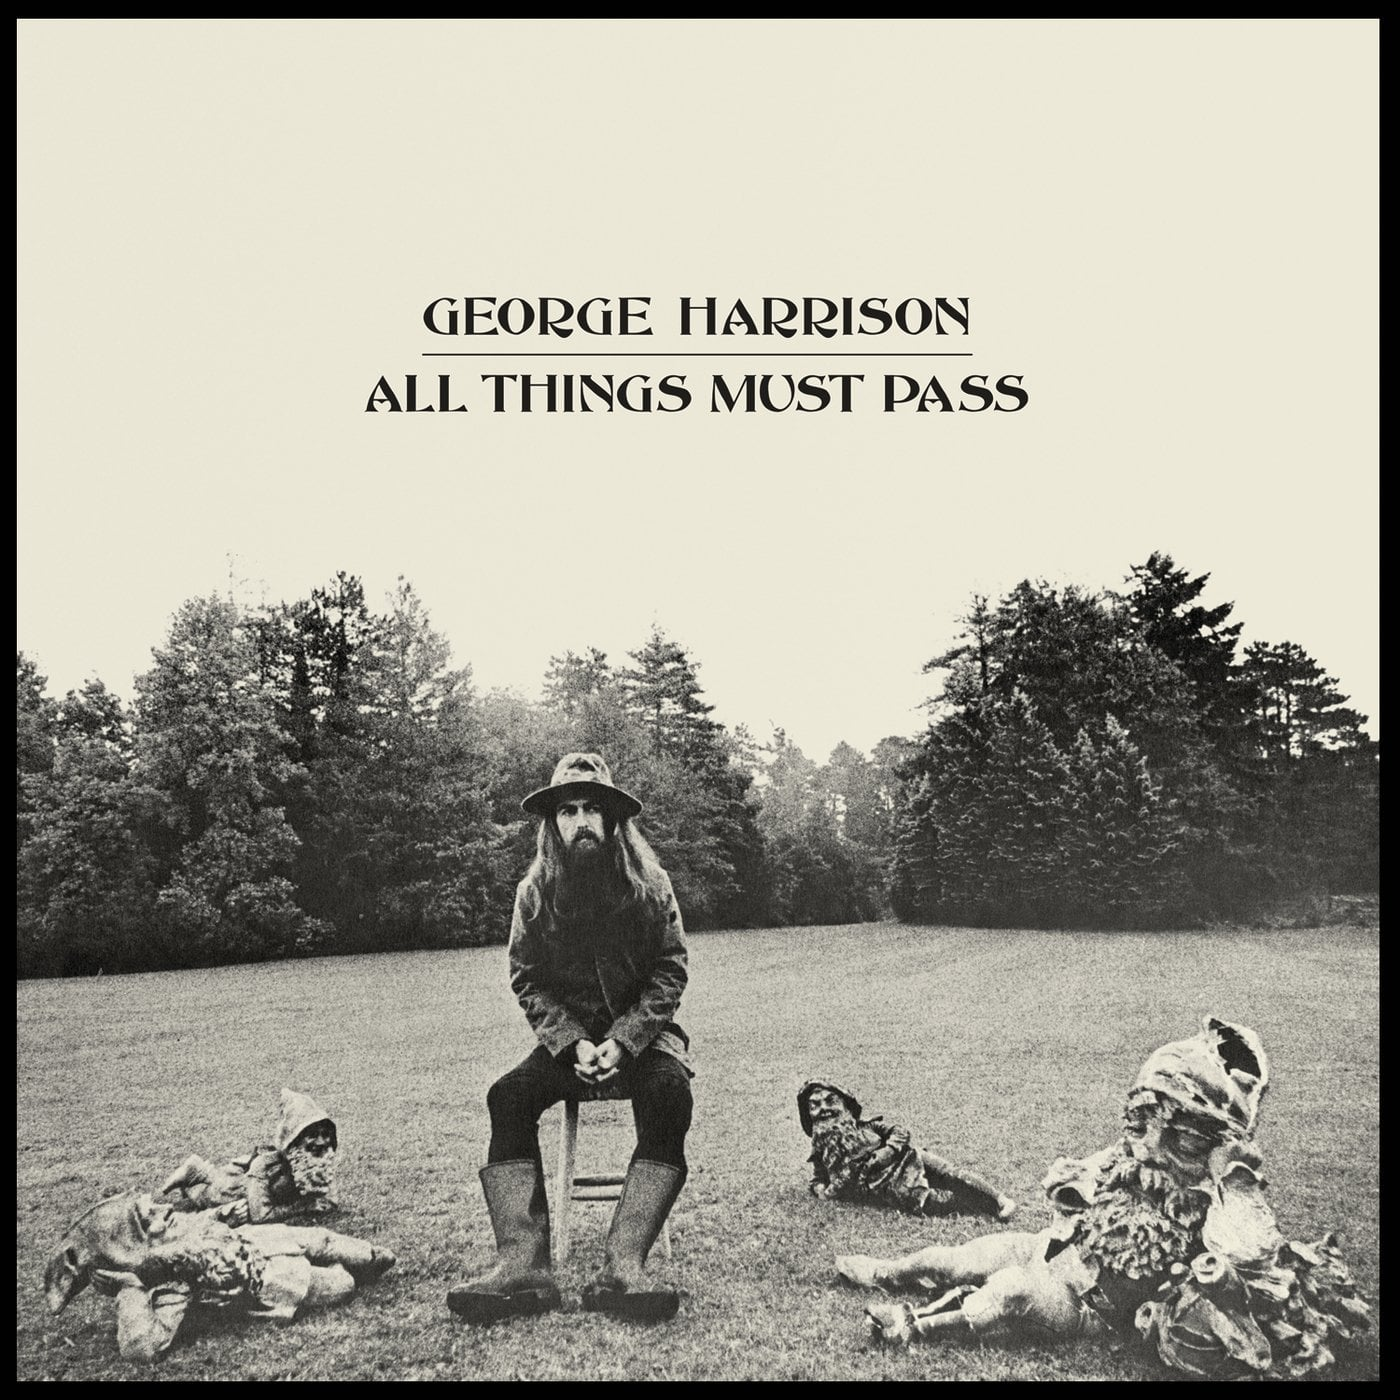 GEORGE HARRISON: 2014er Doppel-CD ALL THINGS MUST PASS